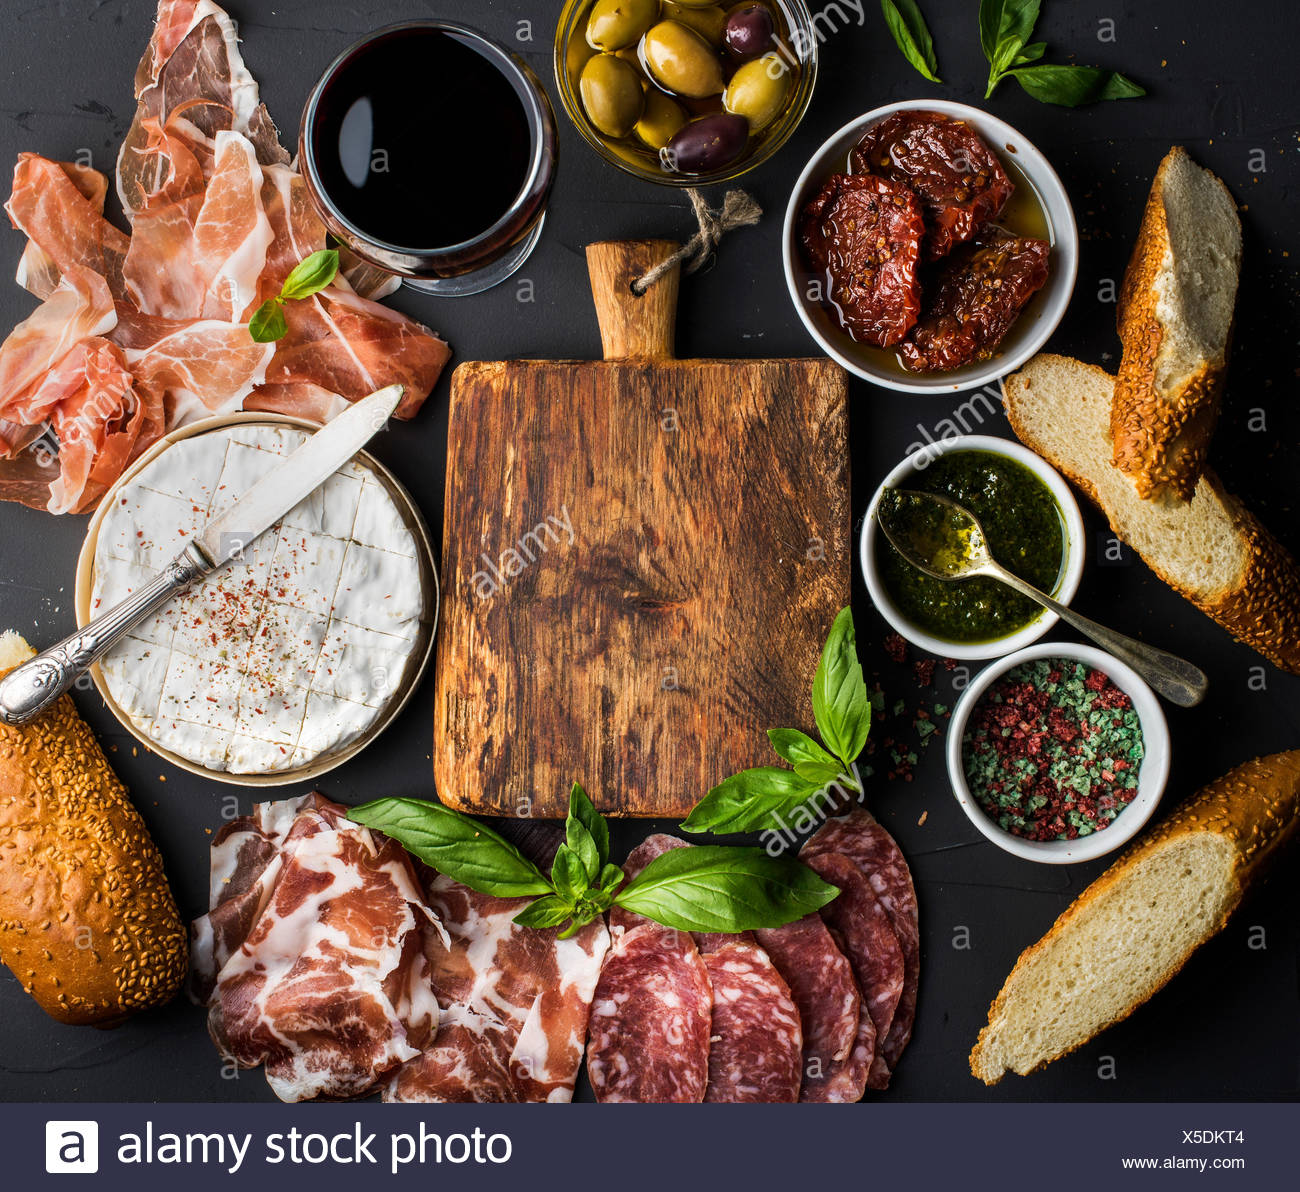 Wine snack set with empty wooden board in center. Glass of red, meat selection, mediterranean olives, sun-dried tomatoes, baguet - Stock Image